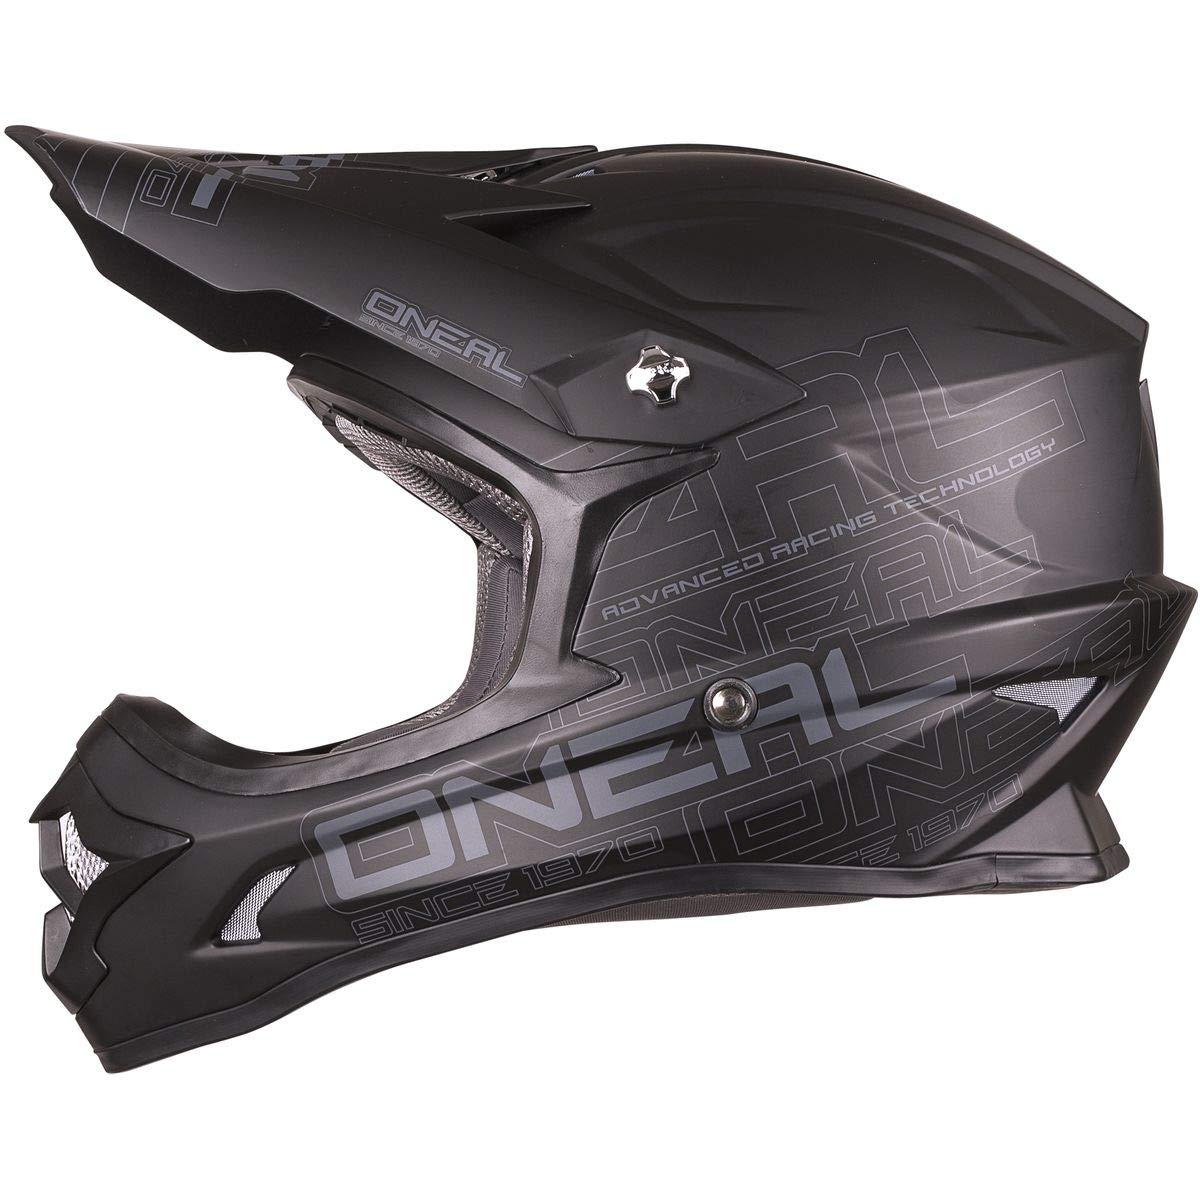 O'Neal 0623-064 3 Series Helmet (Black, Large) by O'Neal